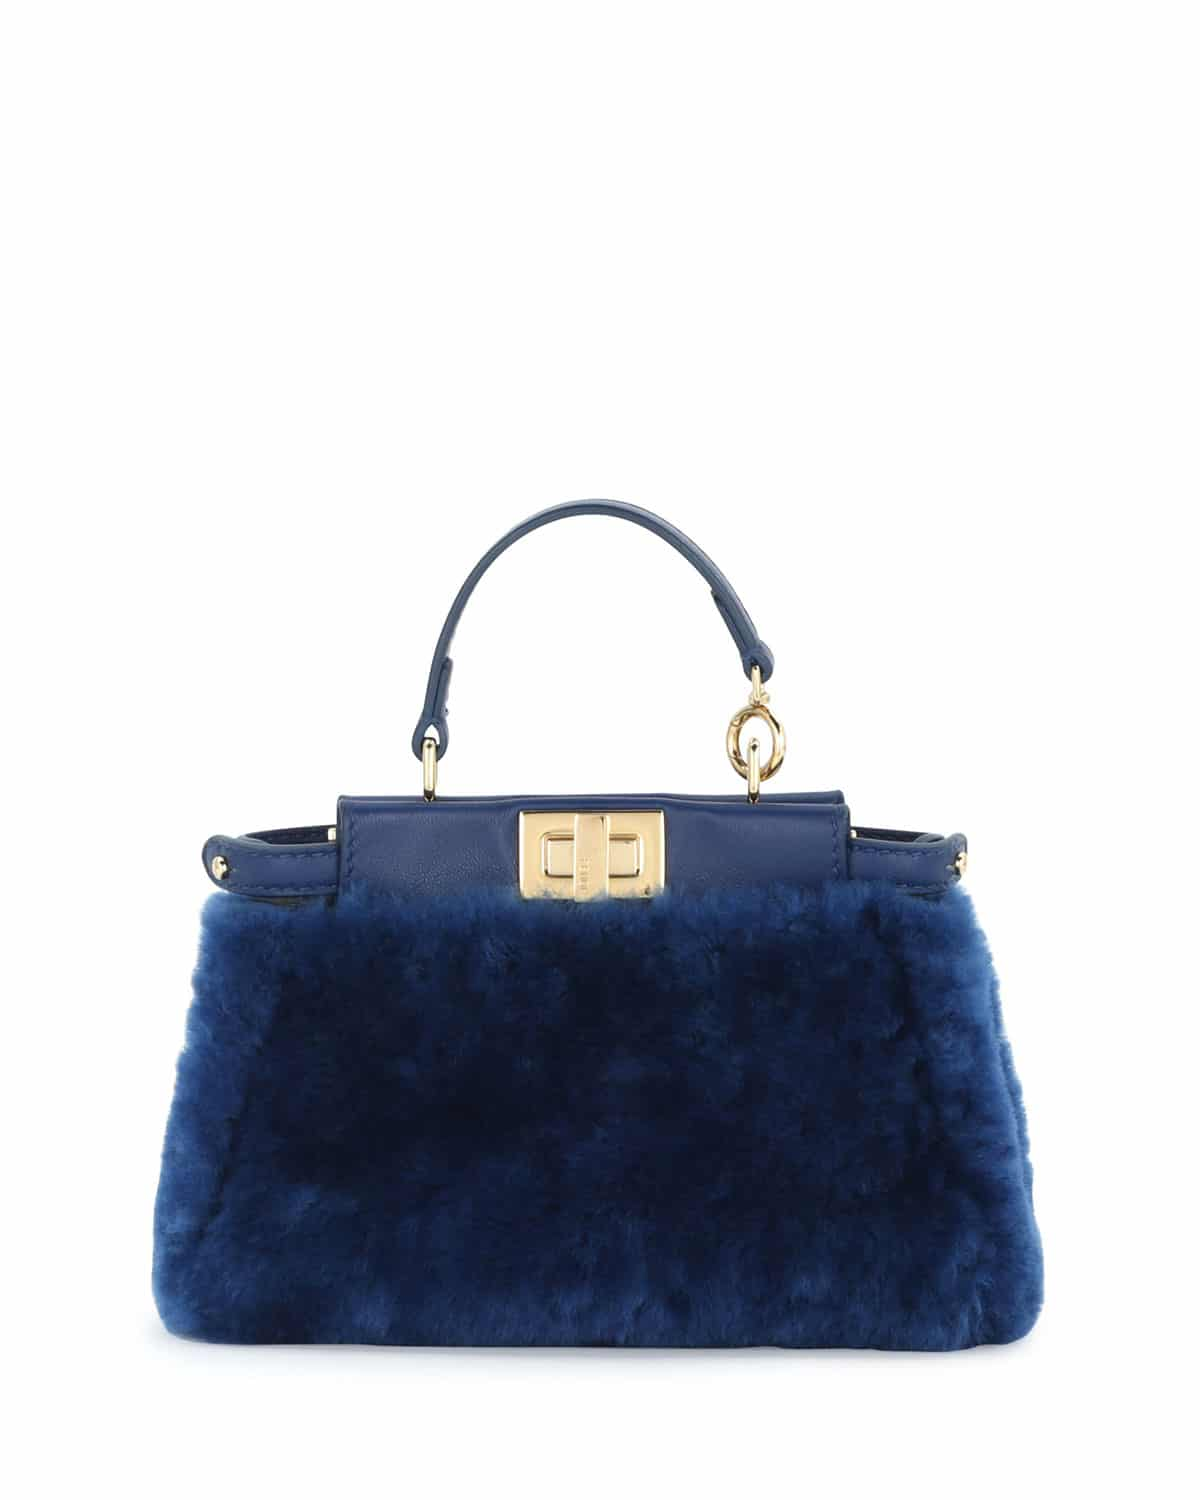 Fendi Fall/Winter 2015 Bag Collection Featuring the ...